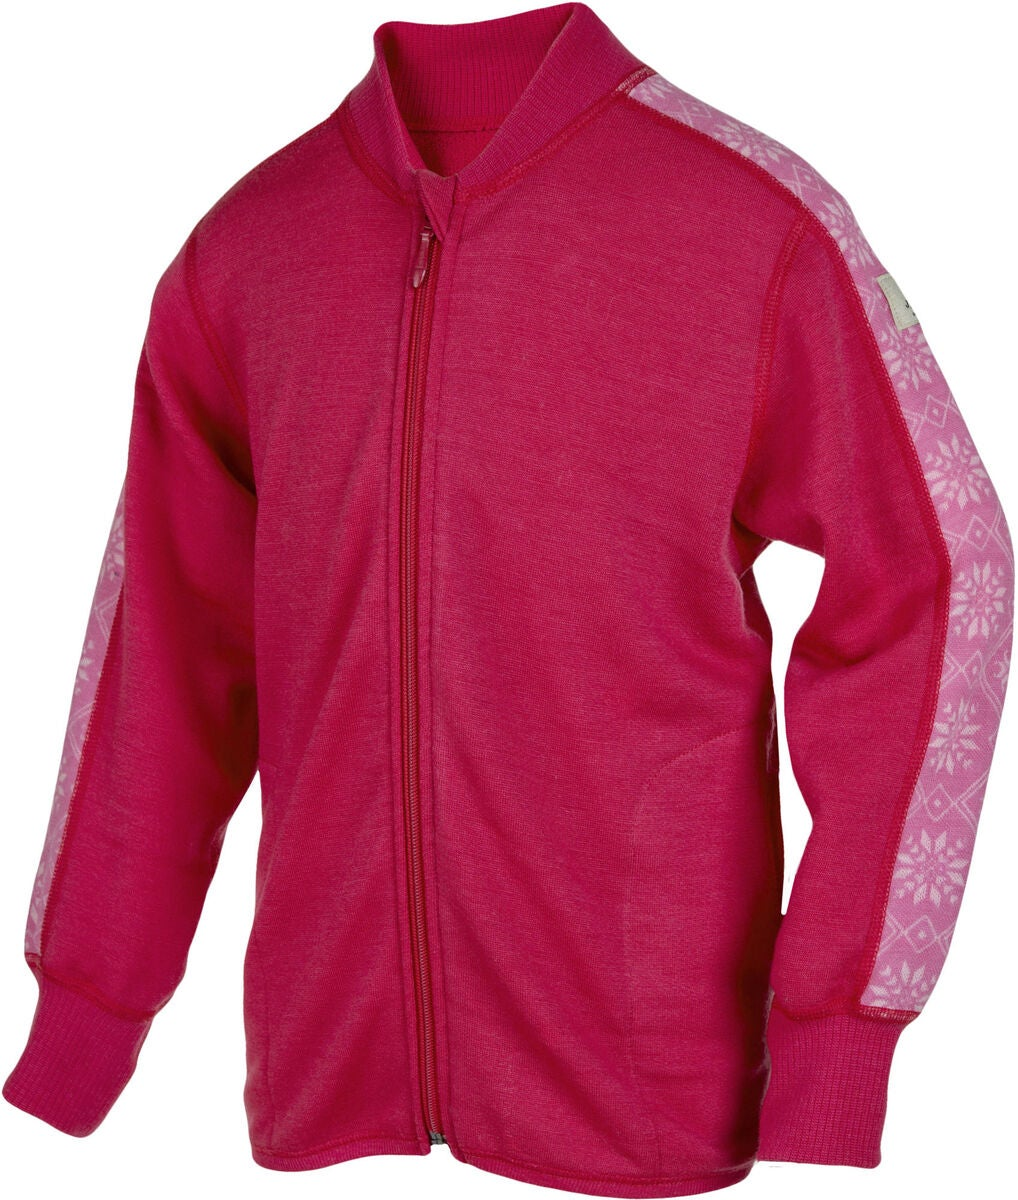 Janus Prins & Prinsess Pullover Wolle, Rose Red